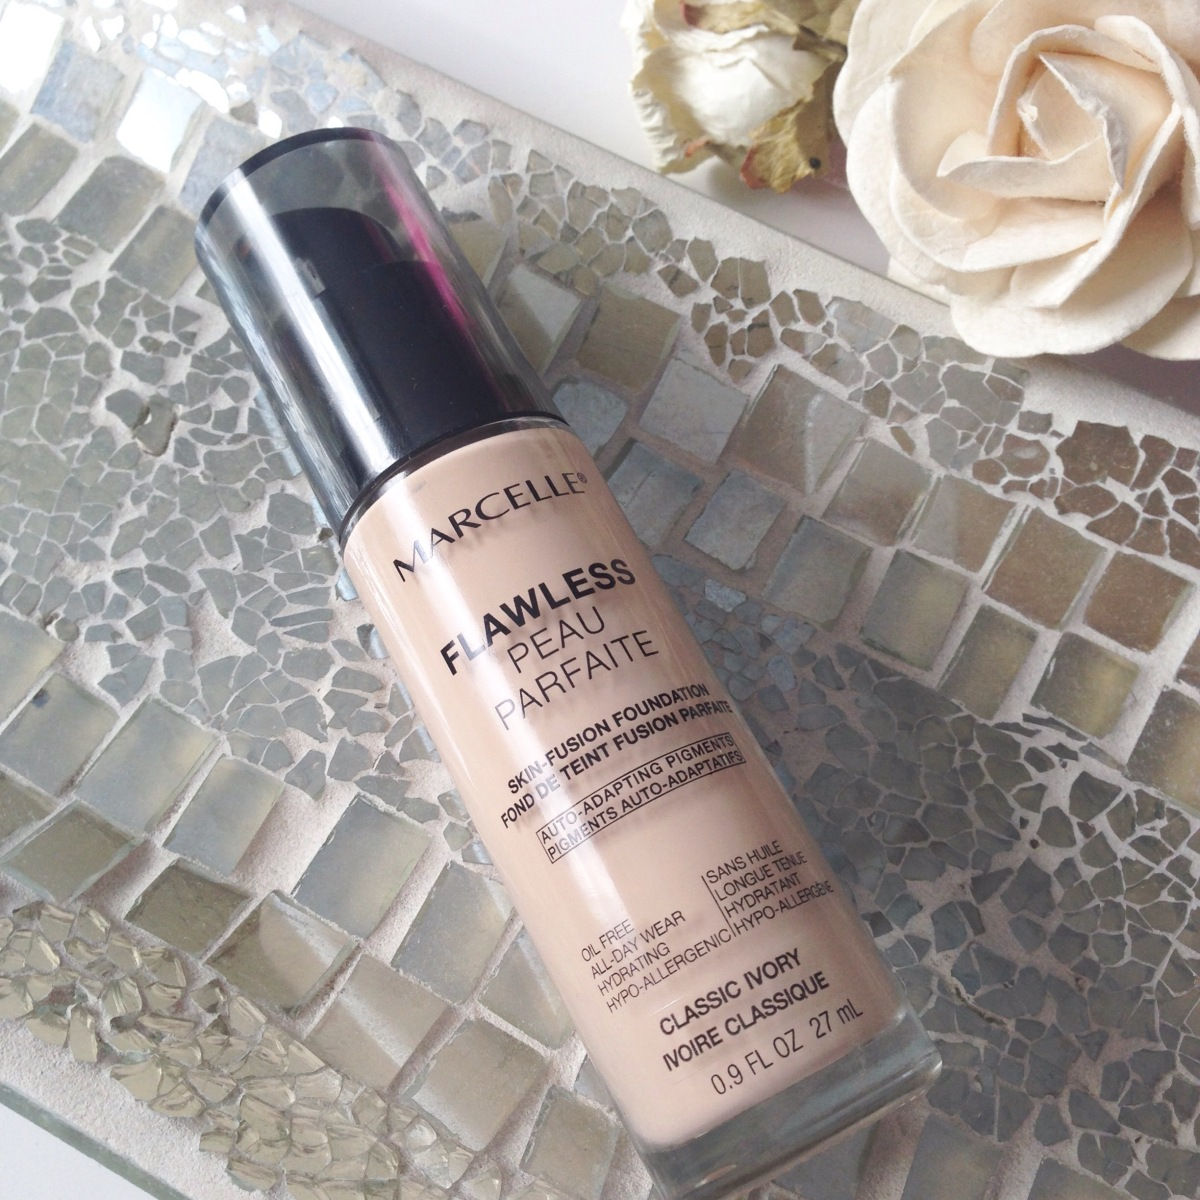 Marcelle Flawless Foundation - REVIEW